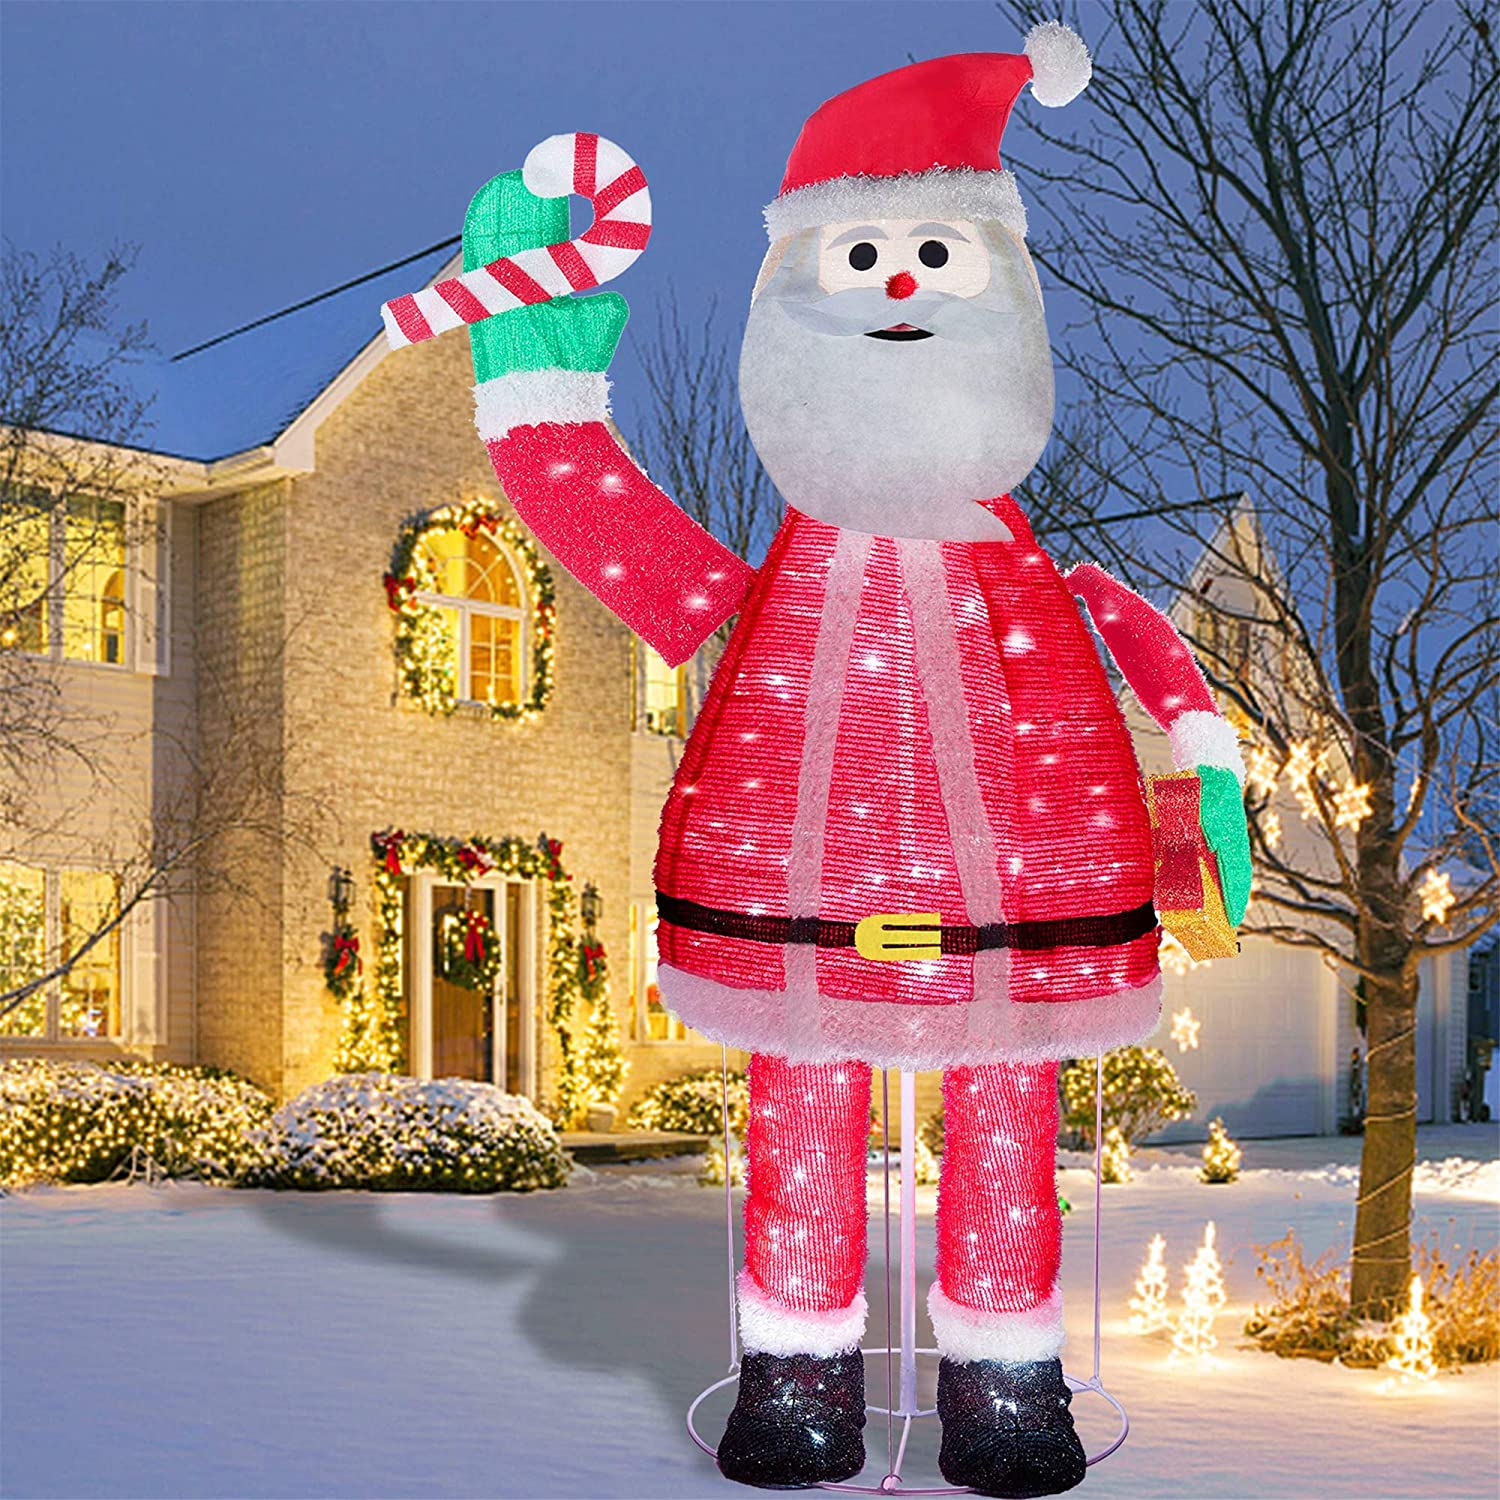 Juegoal 6FT Pop Up Christmas Santa Claus Decorations, Pre-Lit Light Up 200 LED Cool White Lights, Collapsible Easily Metal Stand Easy-Assembly Reusable for Holiday Xmas Indoor Outdoor Decor